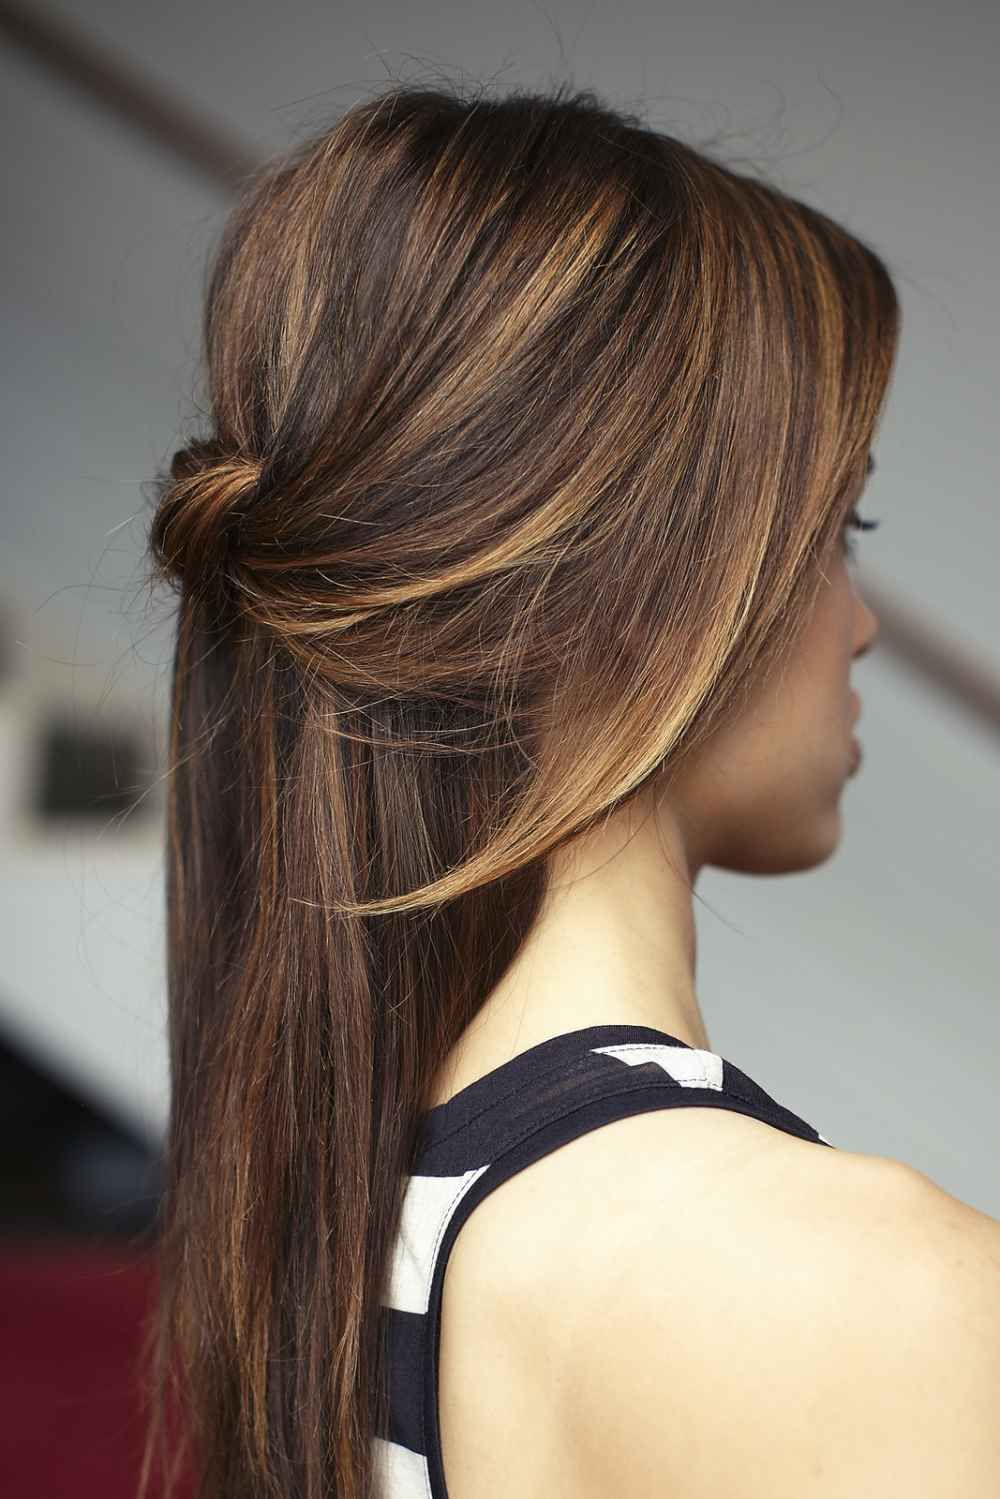 Hair knots howto guide for styling summer easy hair grammy